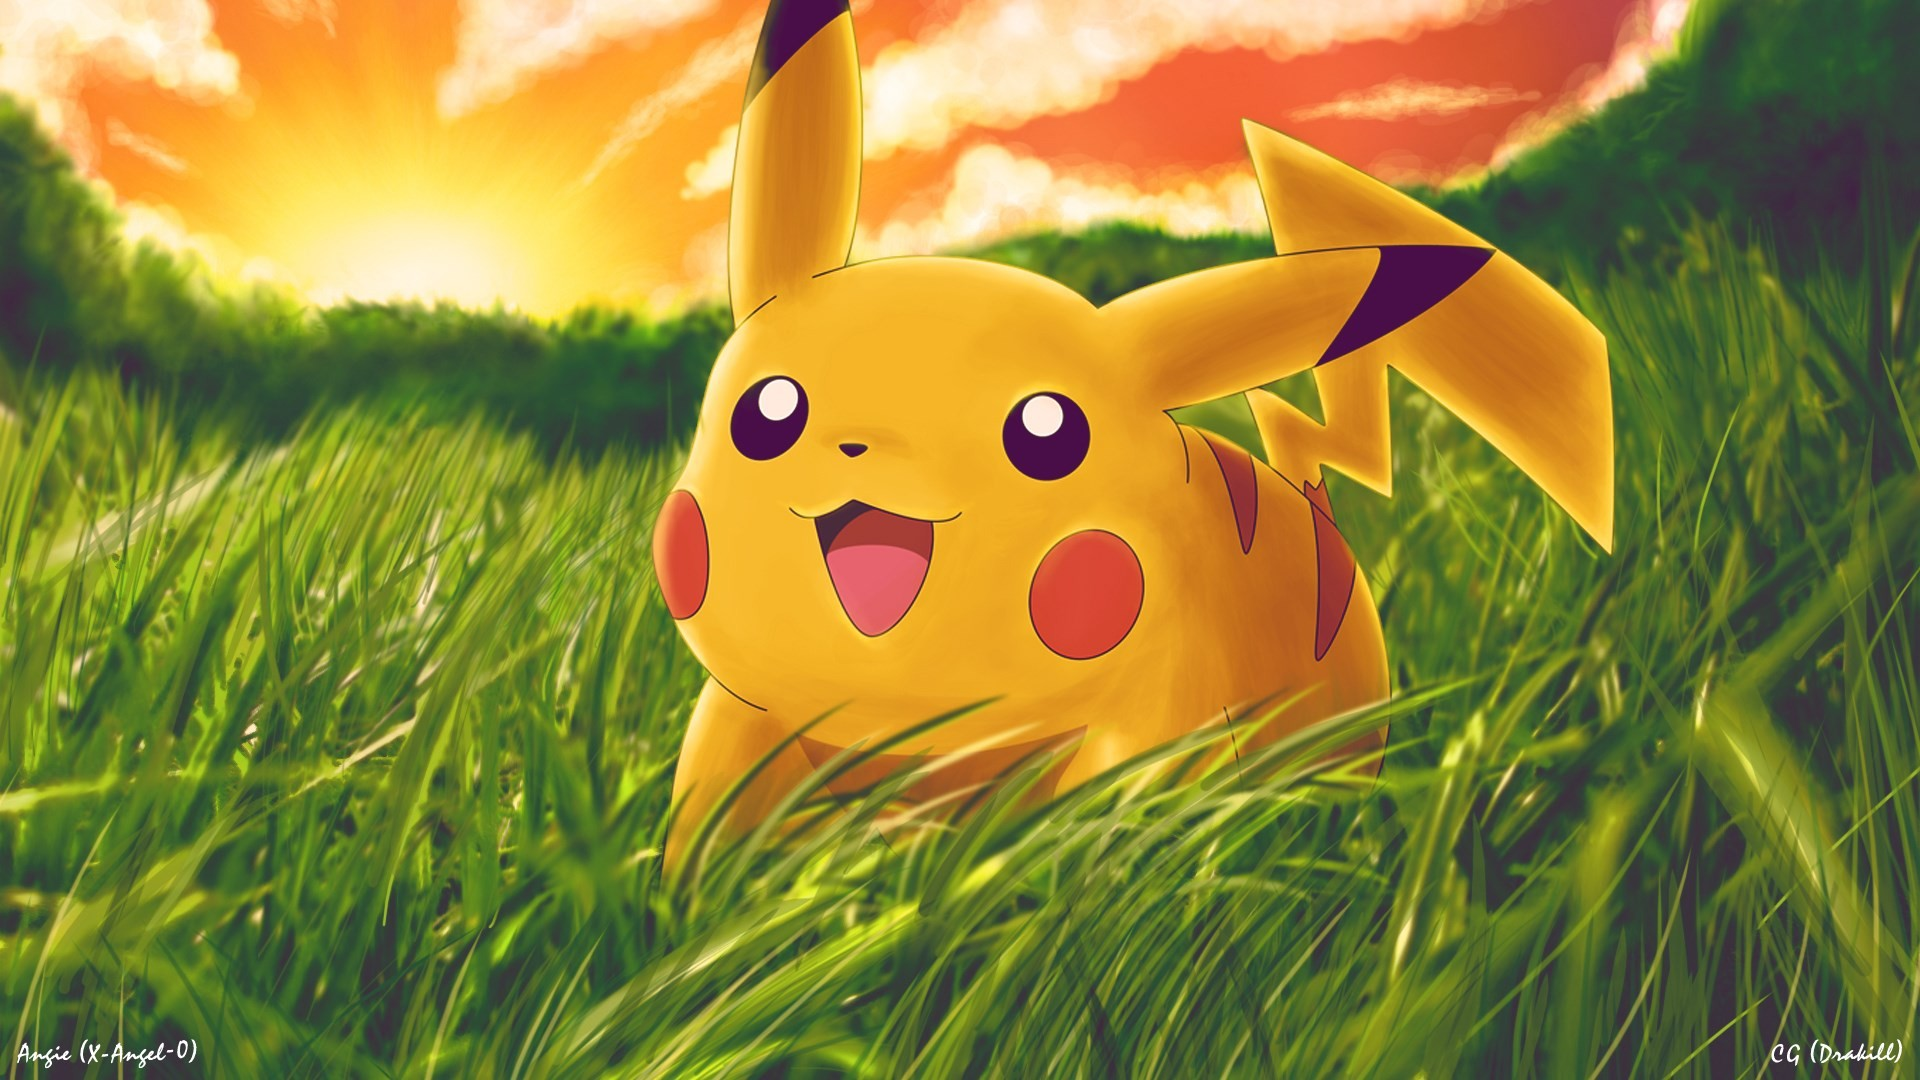 Pokemon Hd Wallpaper Download Free Awesome High Resolution